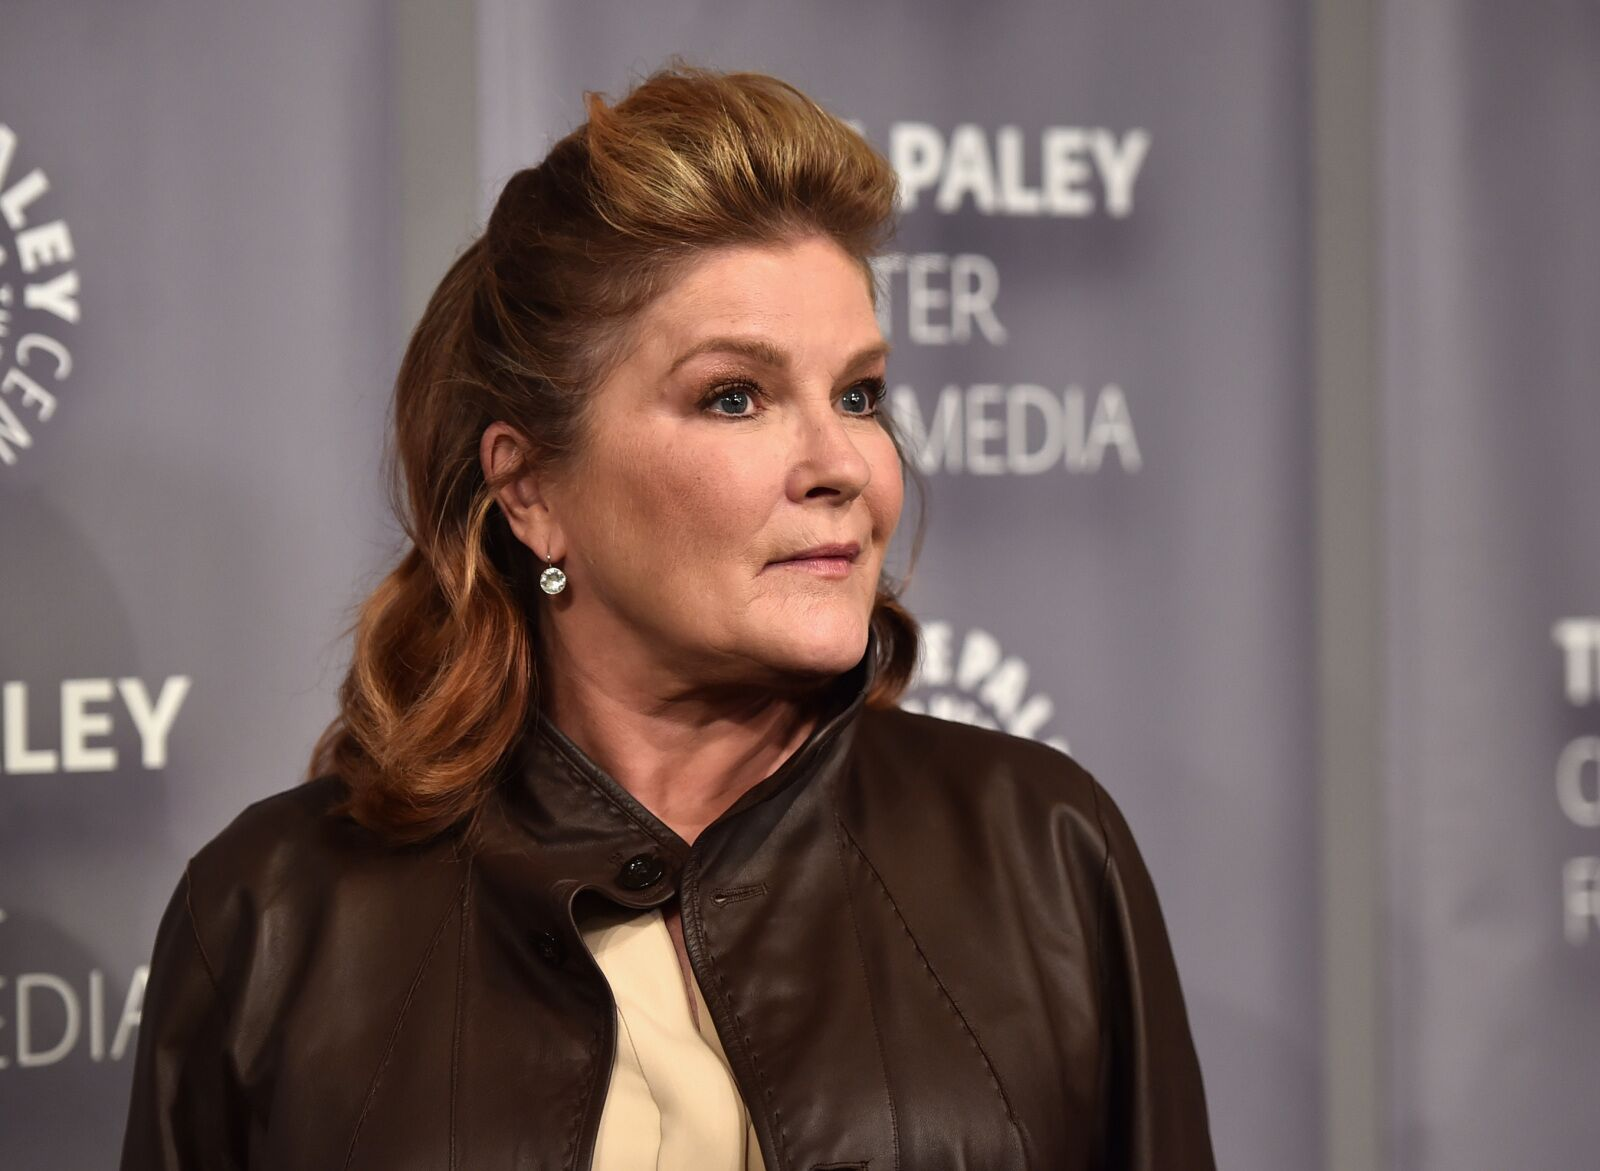 Kate Mulgrew not sure if she would want to play Janeway again